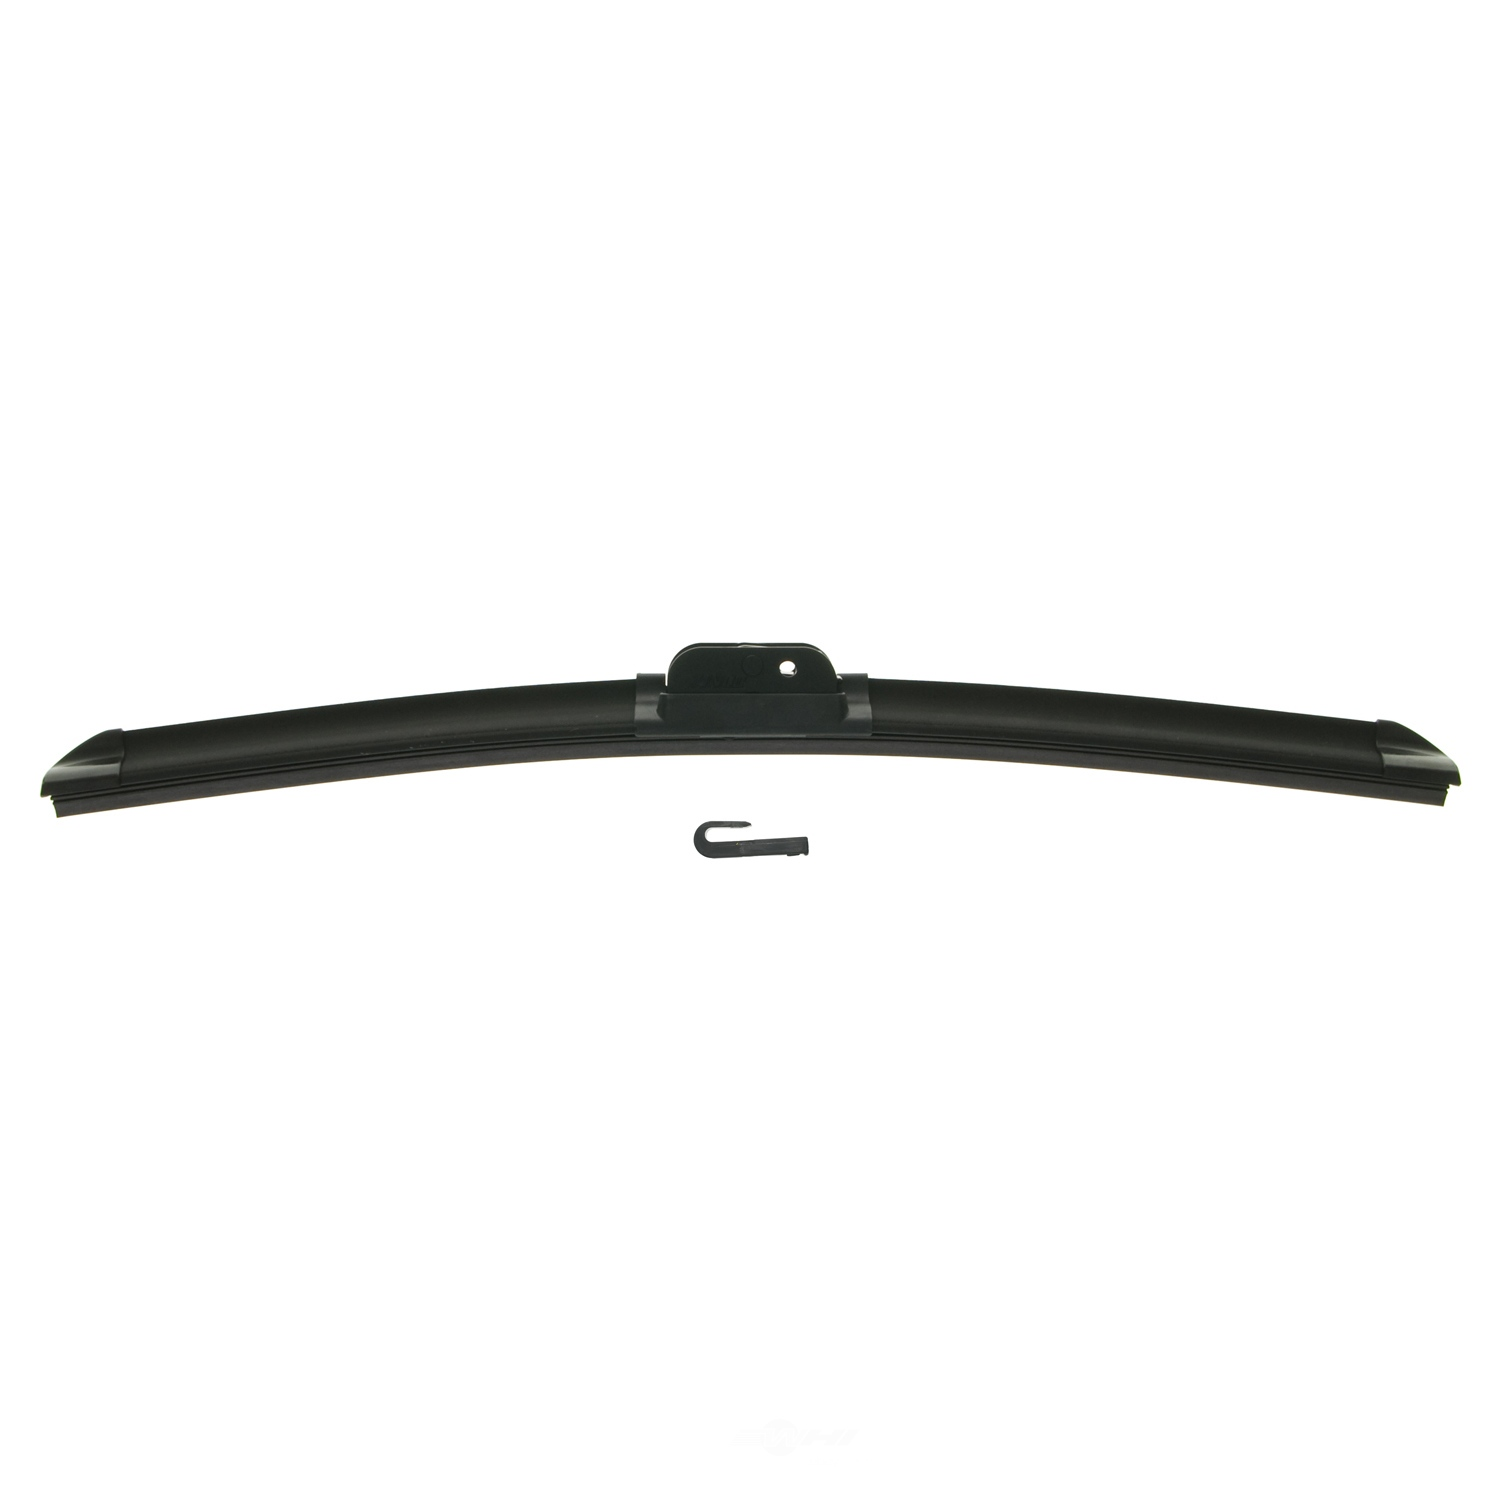 ANCO WIPER PRODUCTS - Contour Wiper Blade - ANC C-16-UB